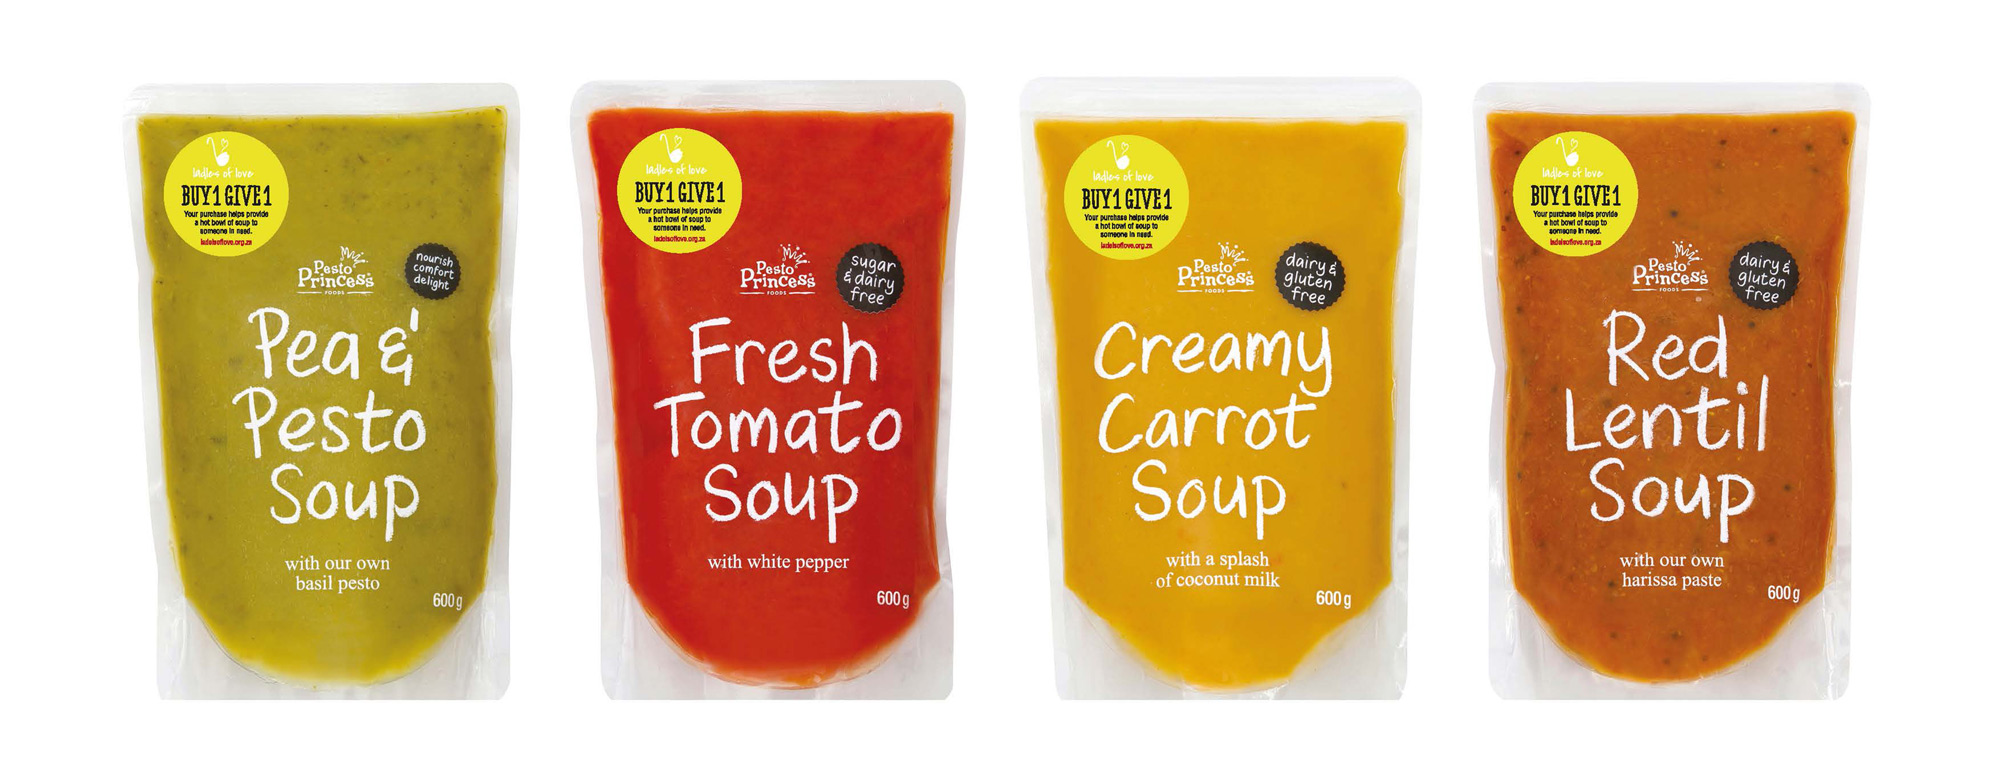 All Soups In The Pesto Princess Range Are Now 100% Vegan! photo